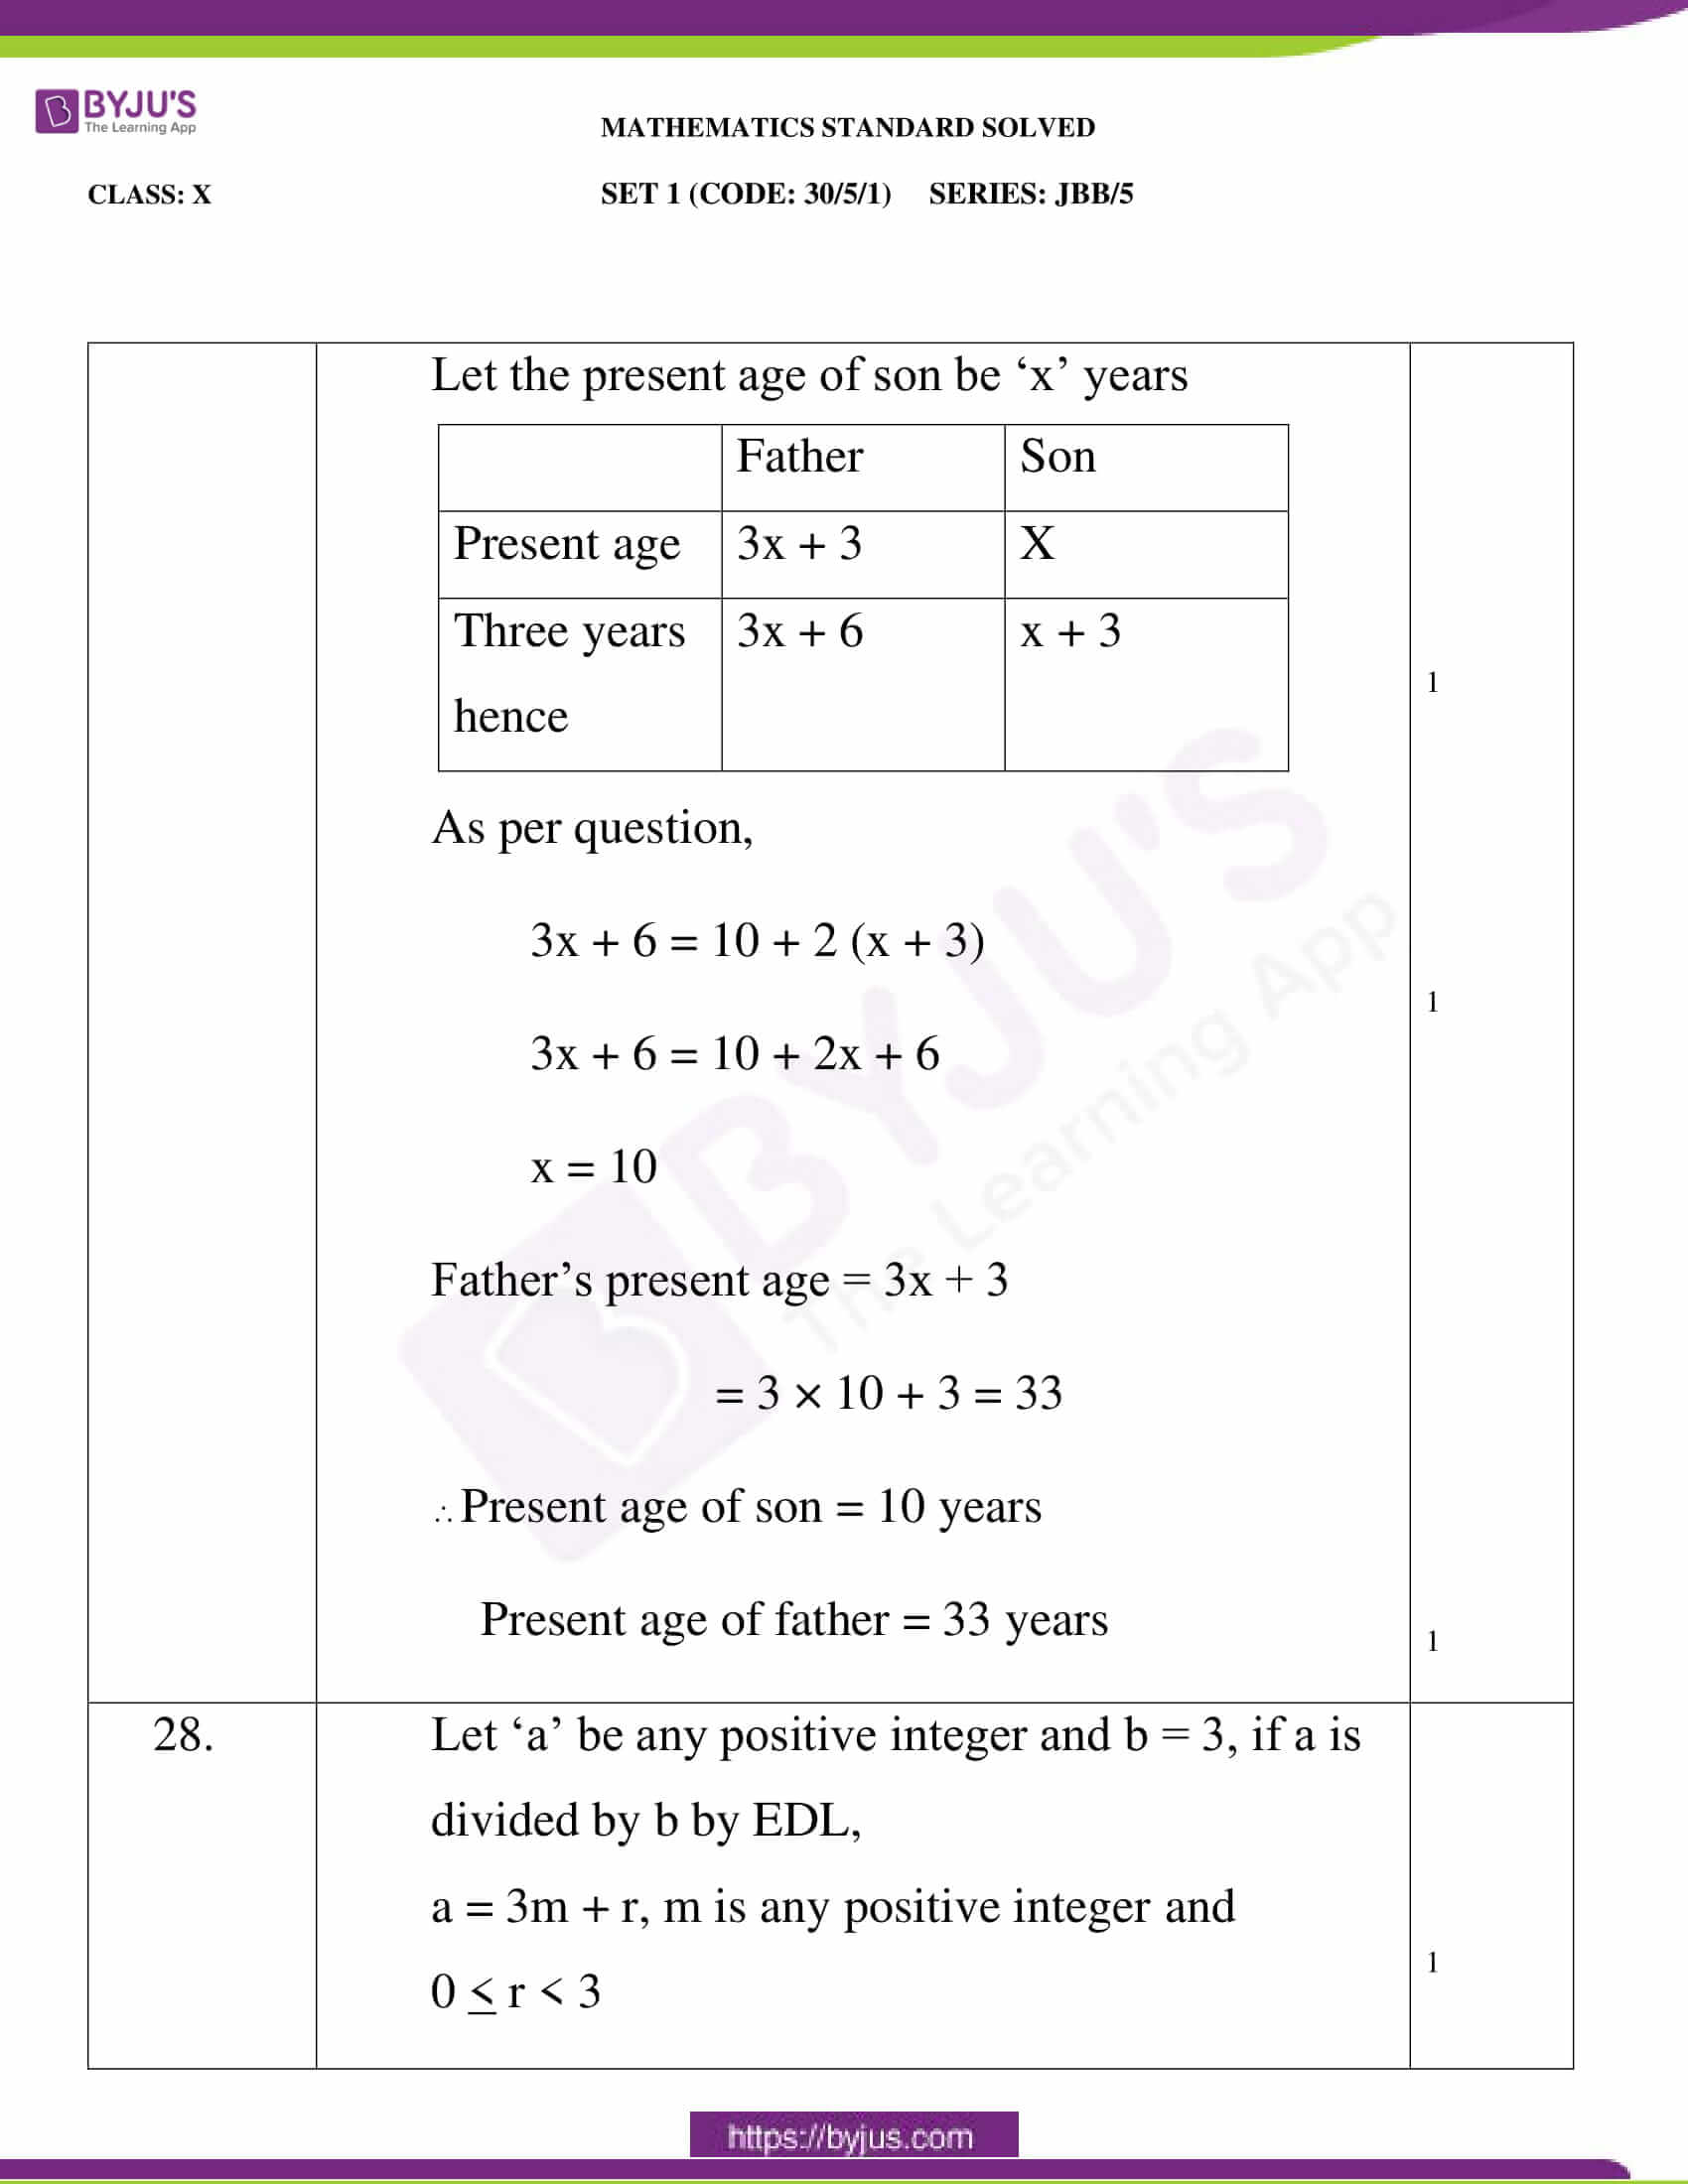 cbse class 10 maths standard question paper solution 2020 set 1 09